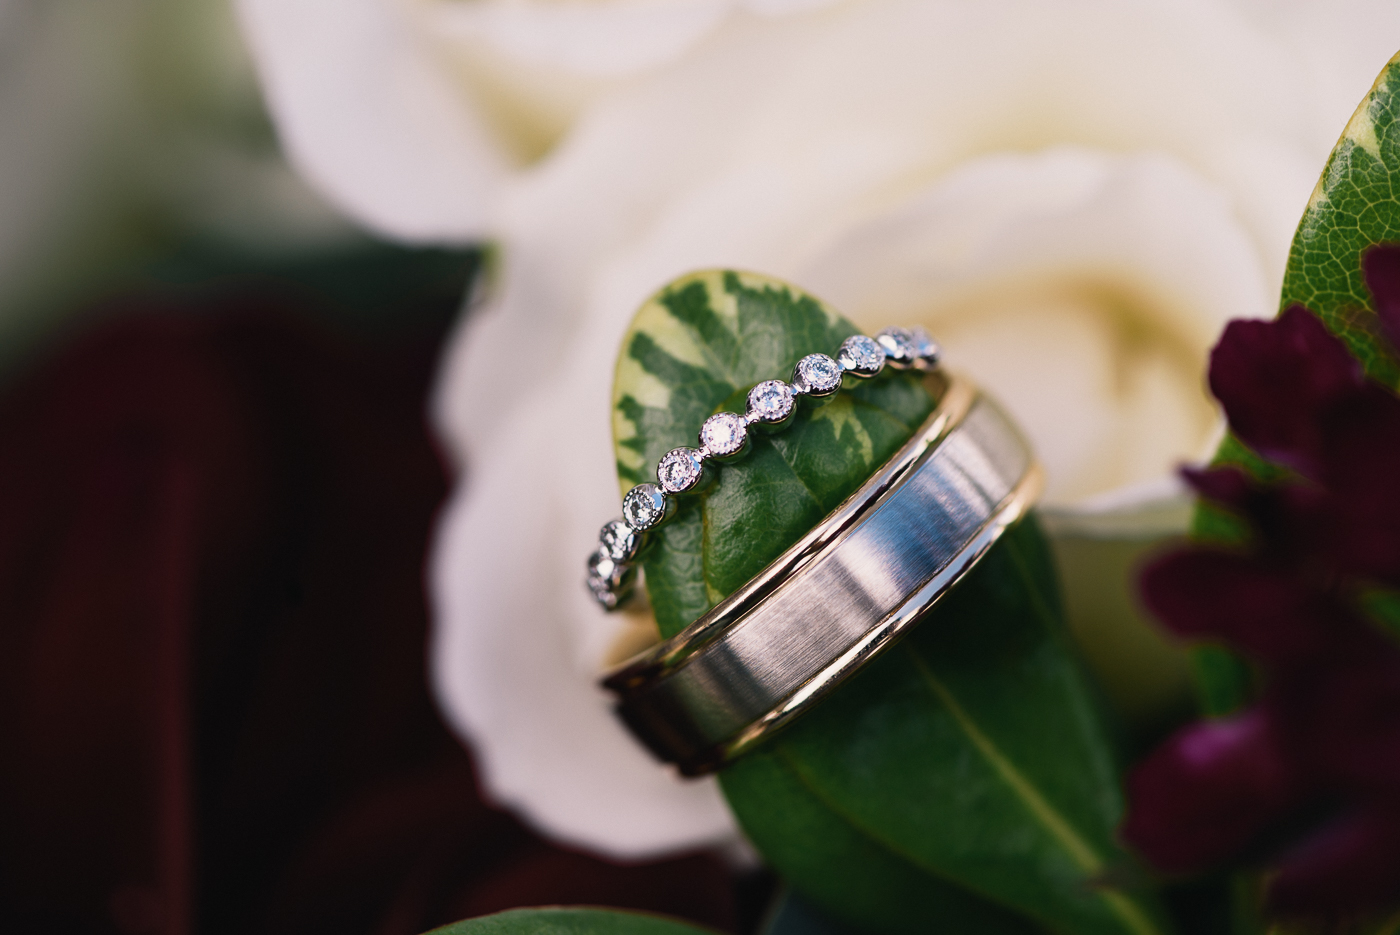 His and Hers wedding rings wedding bands diamonds flowers bouquet